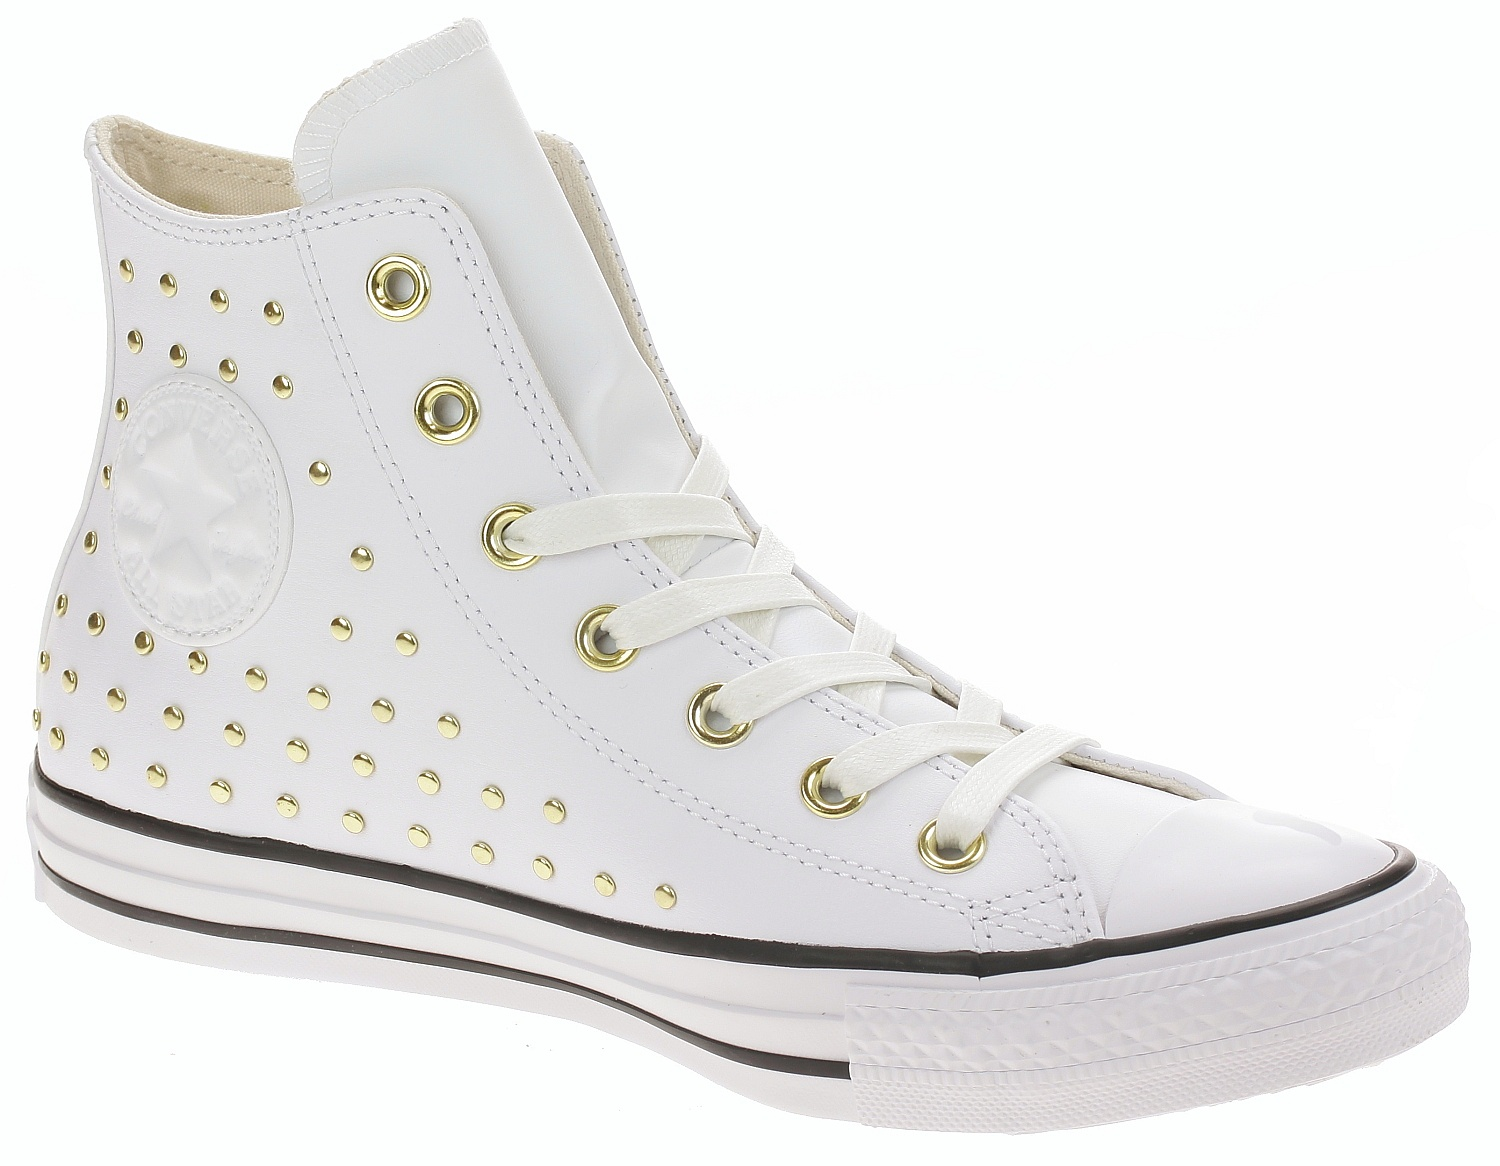 218feeec7d6 boty Converse Chuck Taylor All Star Hi - 561683 White White Gold 37